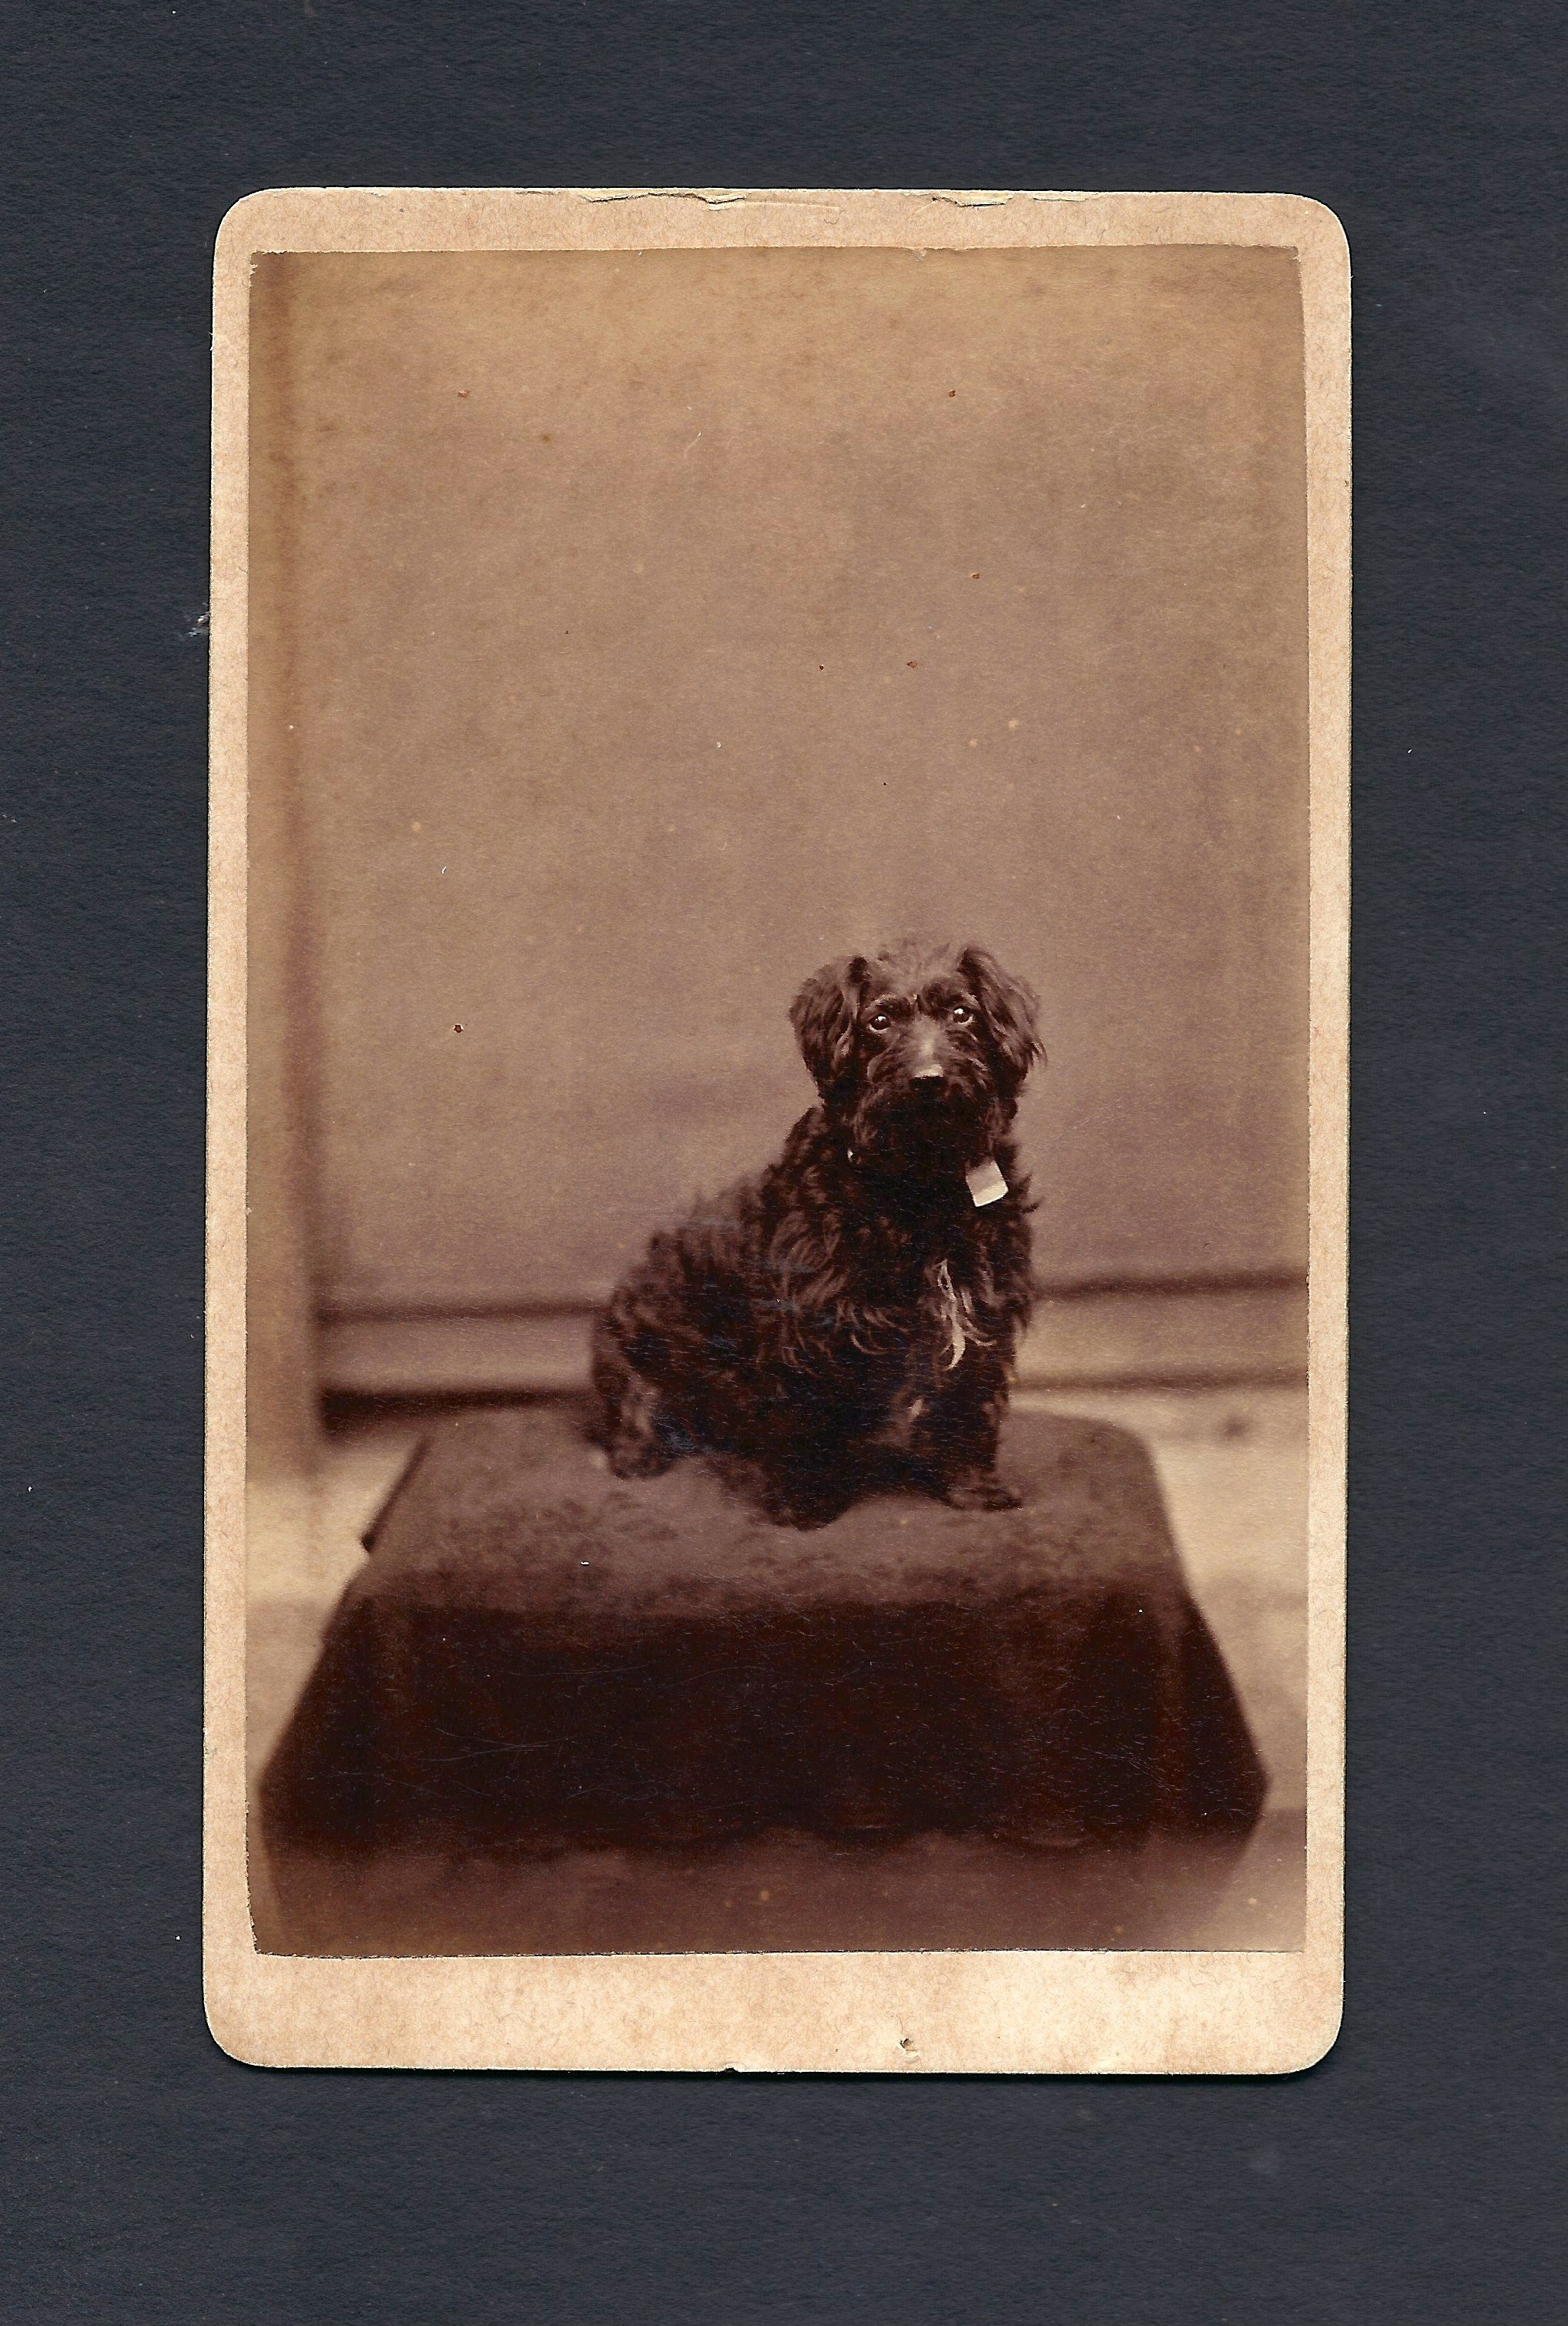 Ziggy Was Photographed In 1889 By H B Upton Of Crystal Lodge